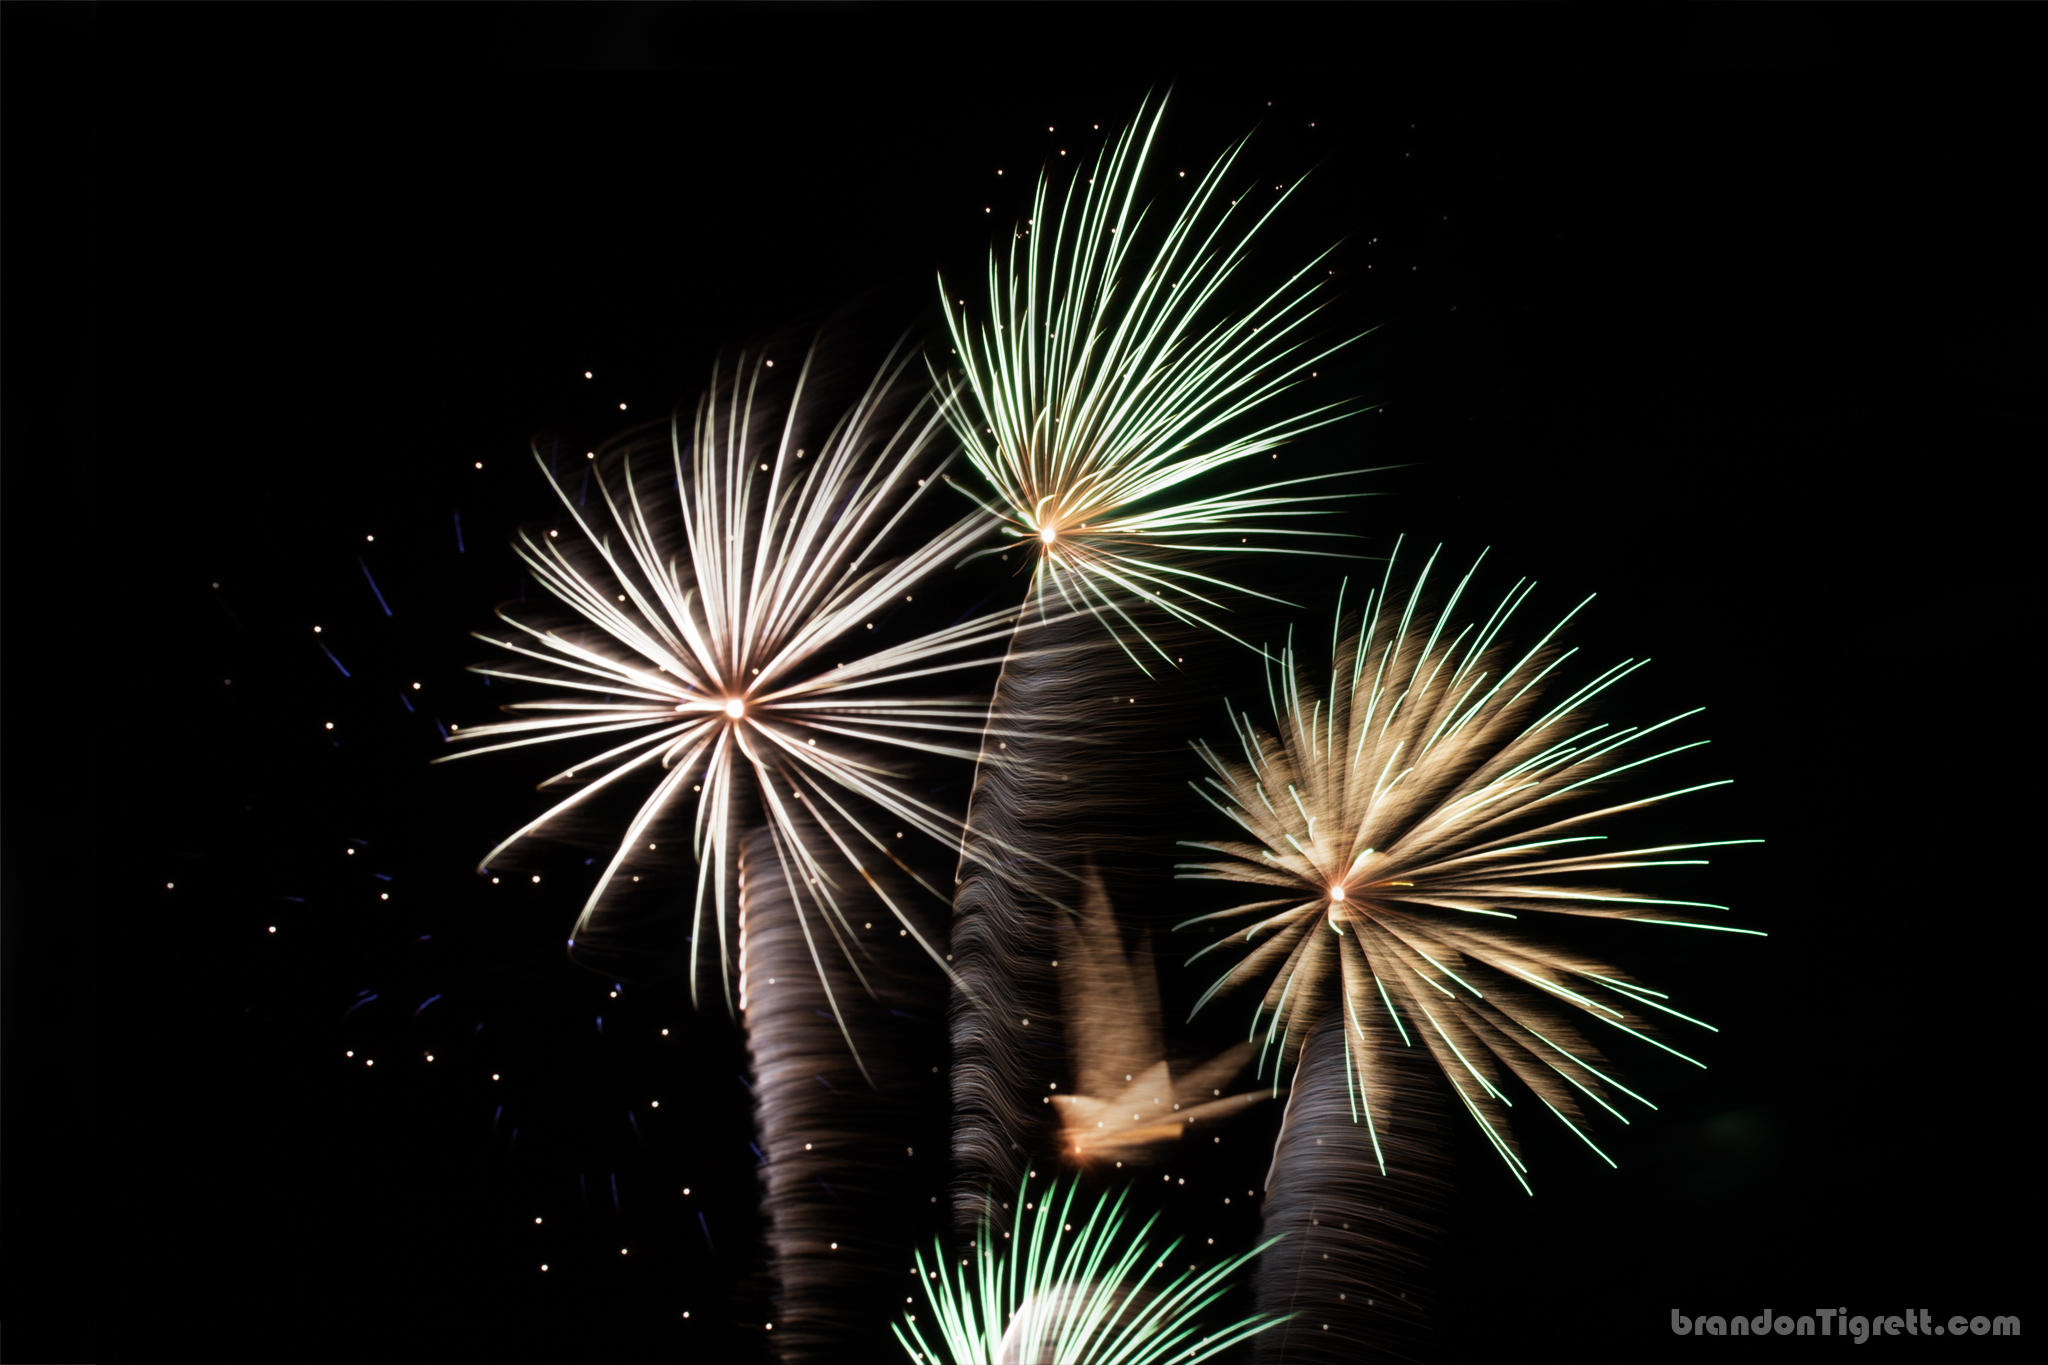 Creative Fireworks Photos - 4th of July